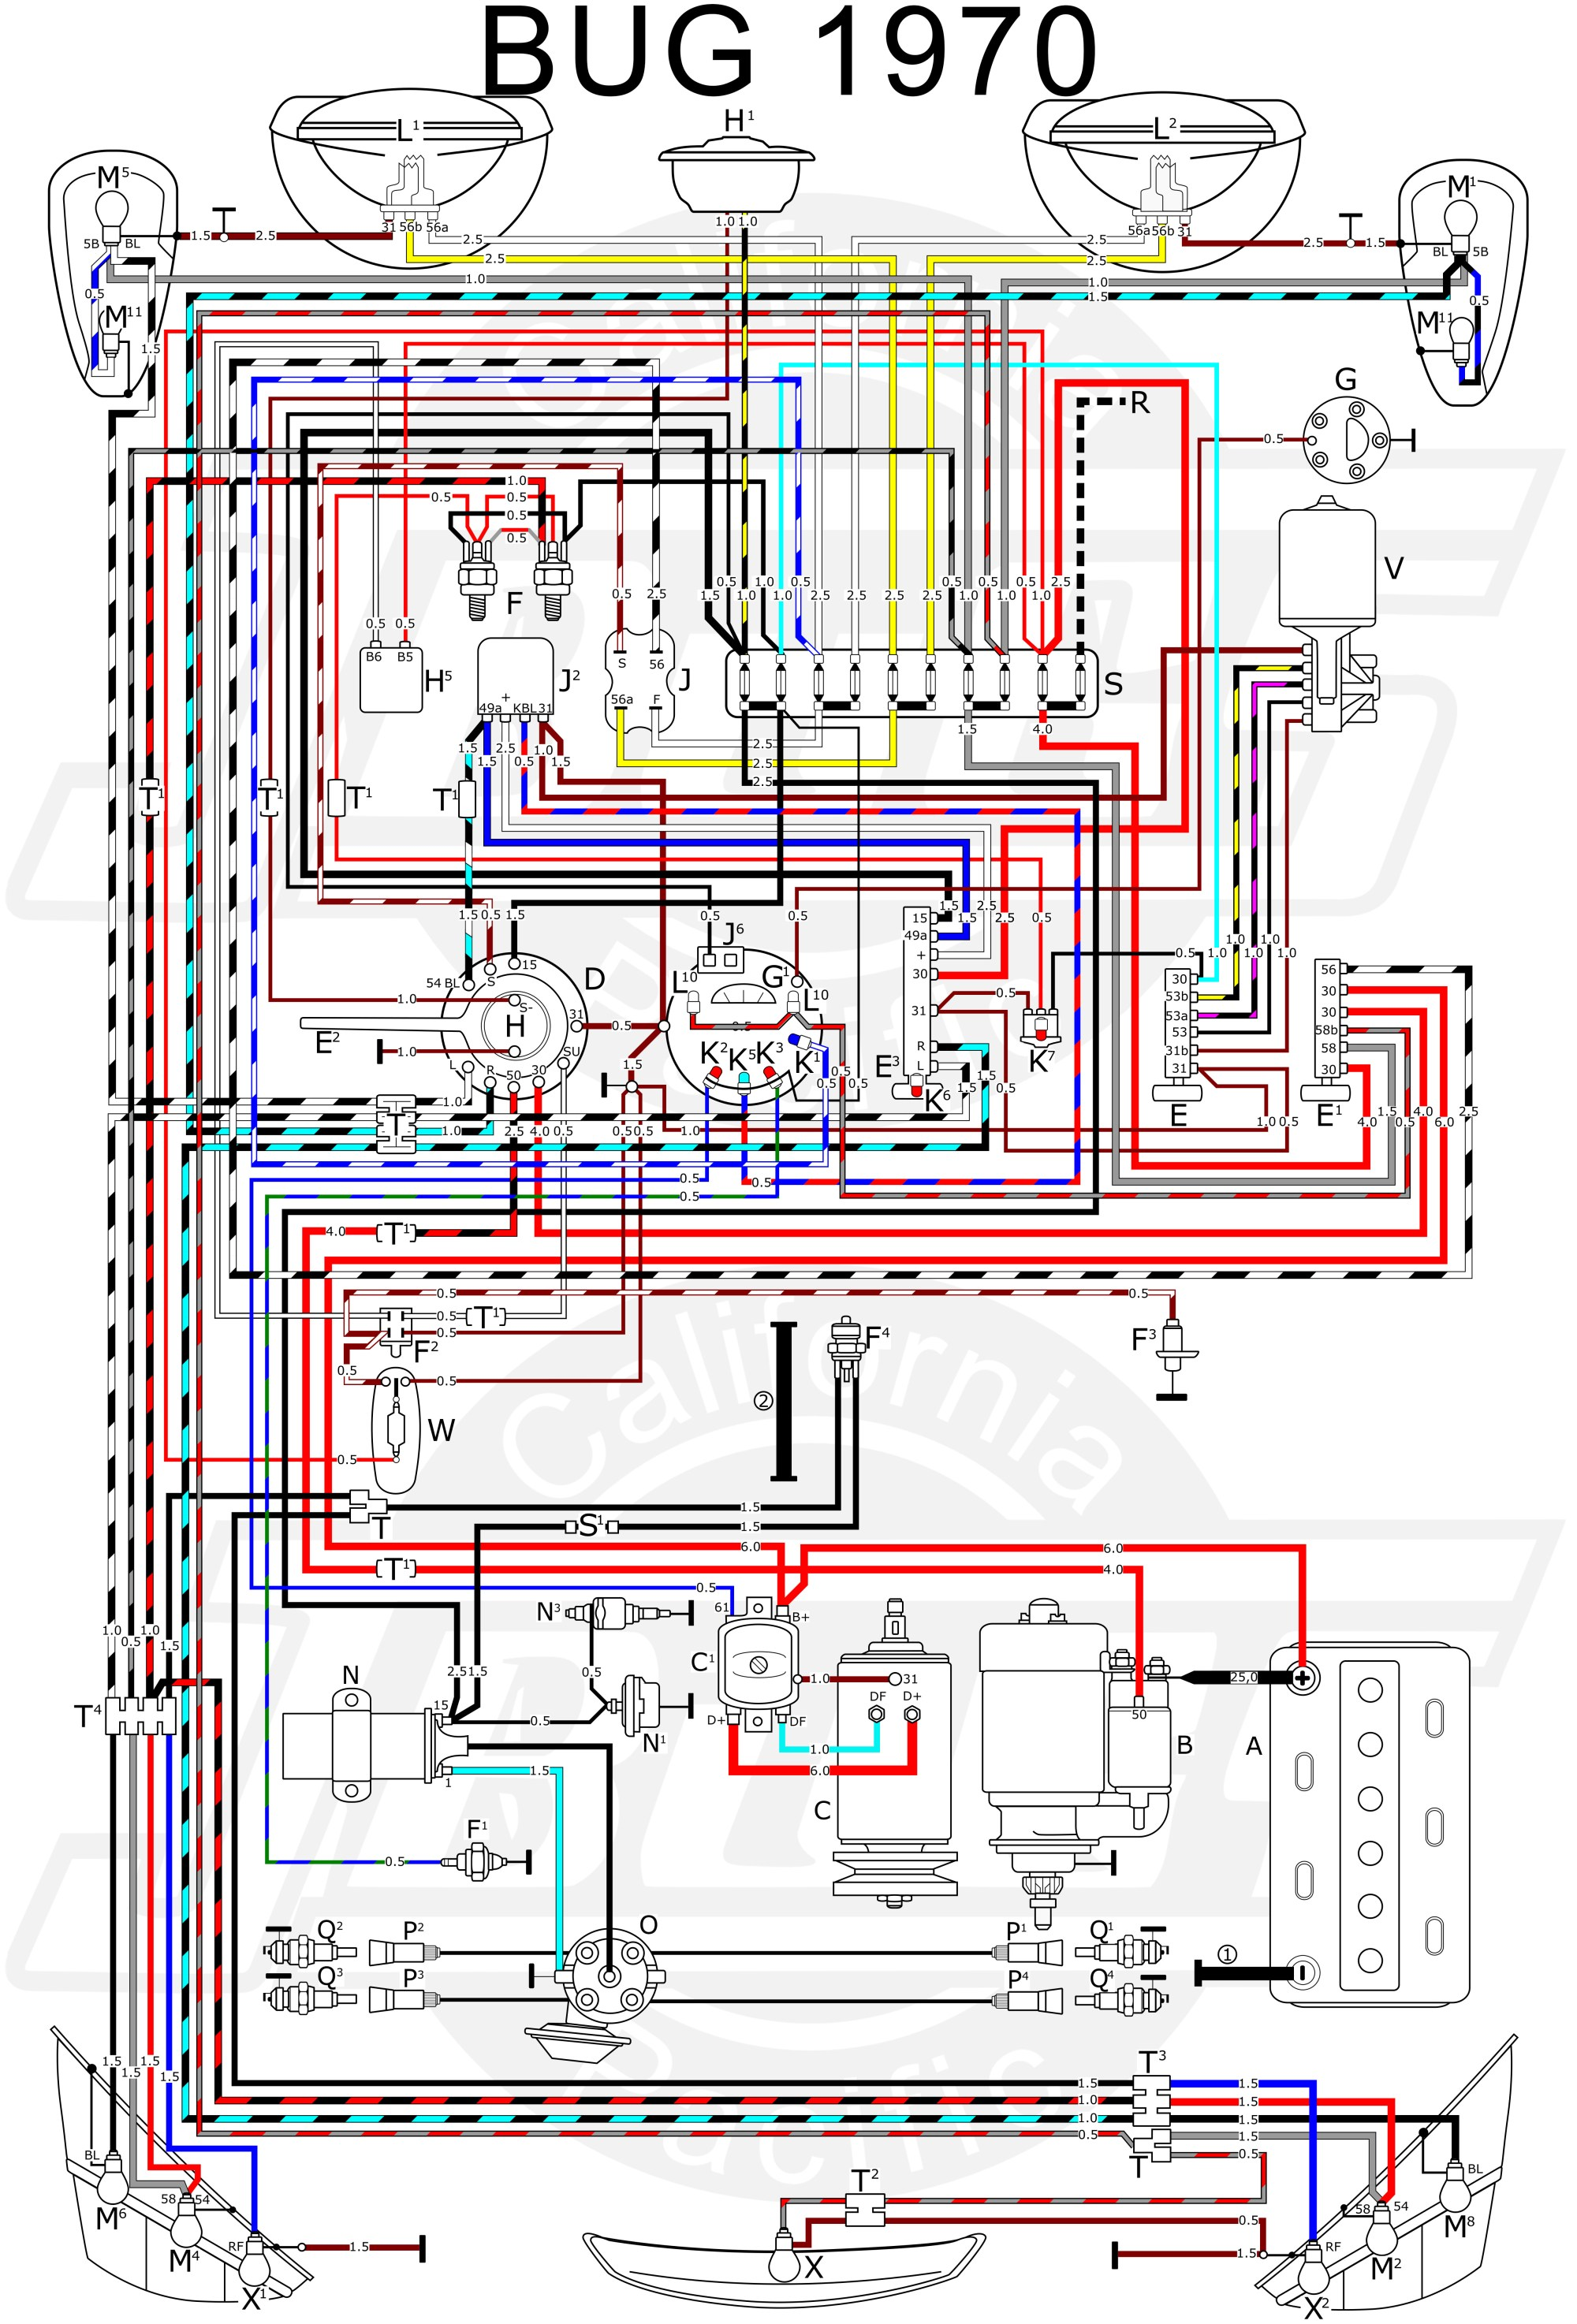 hight resolution of 1972 vw engine diagram wiring diagram operations wiring diagram vw beetle 1967 1972 vw beetle wiring